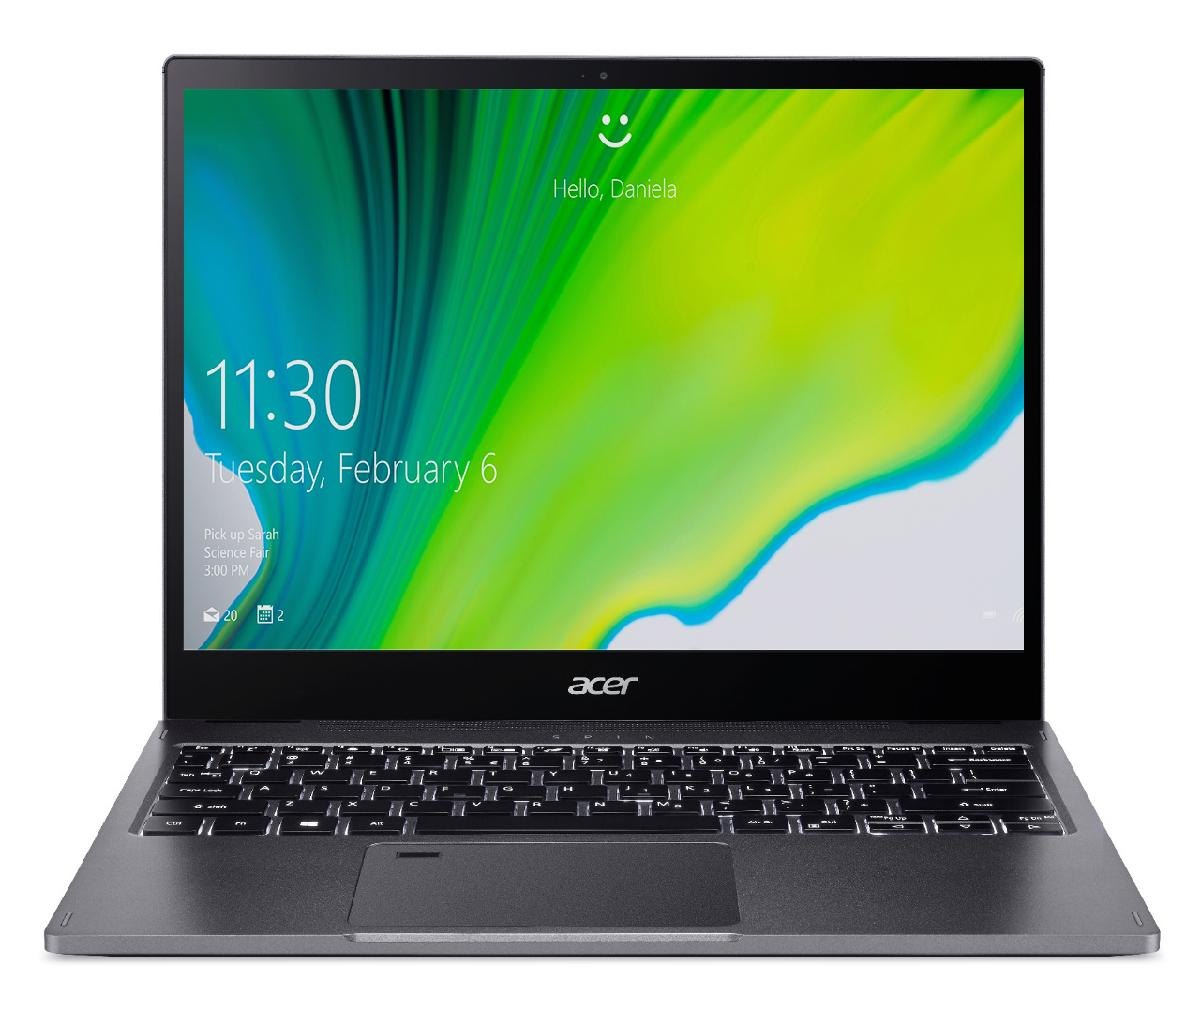 Notebook - Acer Sp513-54n-743j I7-1065g 1.30ghz 16gb 512gb Ssd Intel Hd Graphics Windows 10 Home Spin 5 13,5